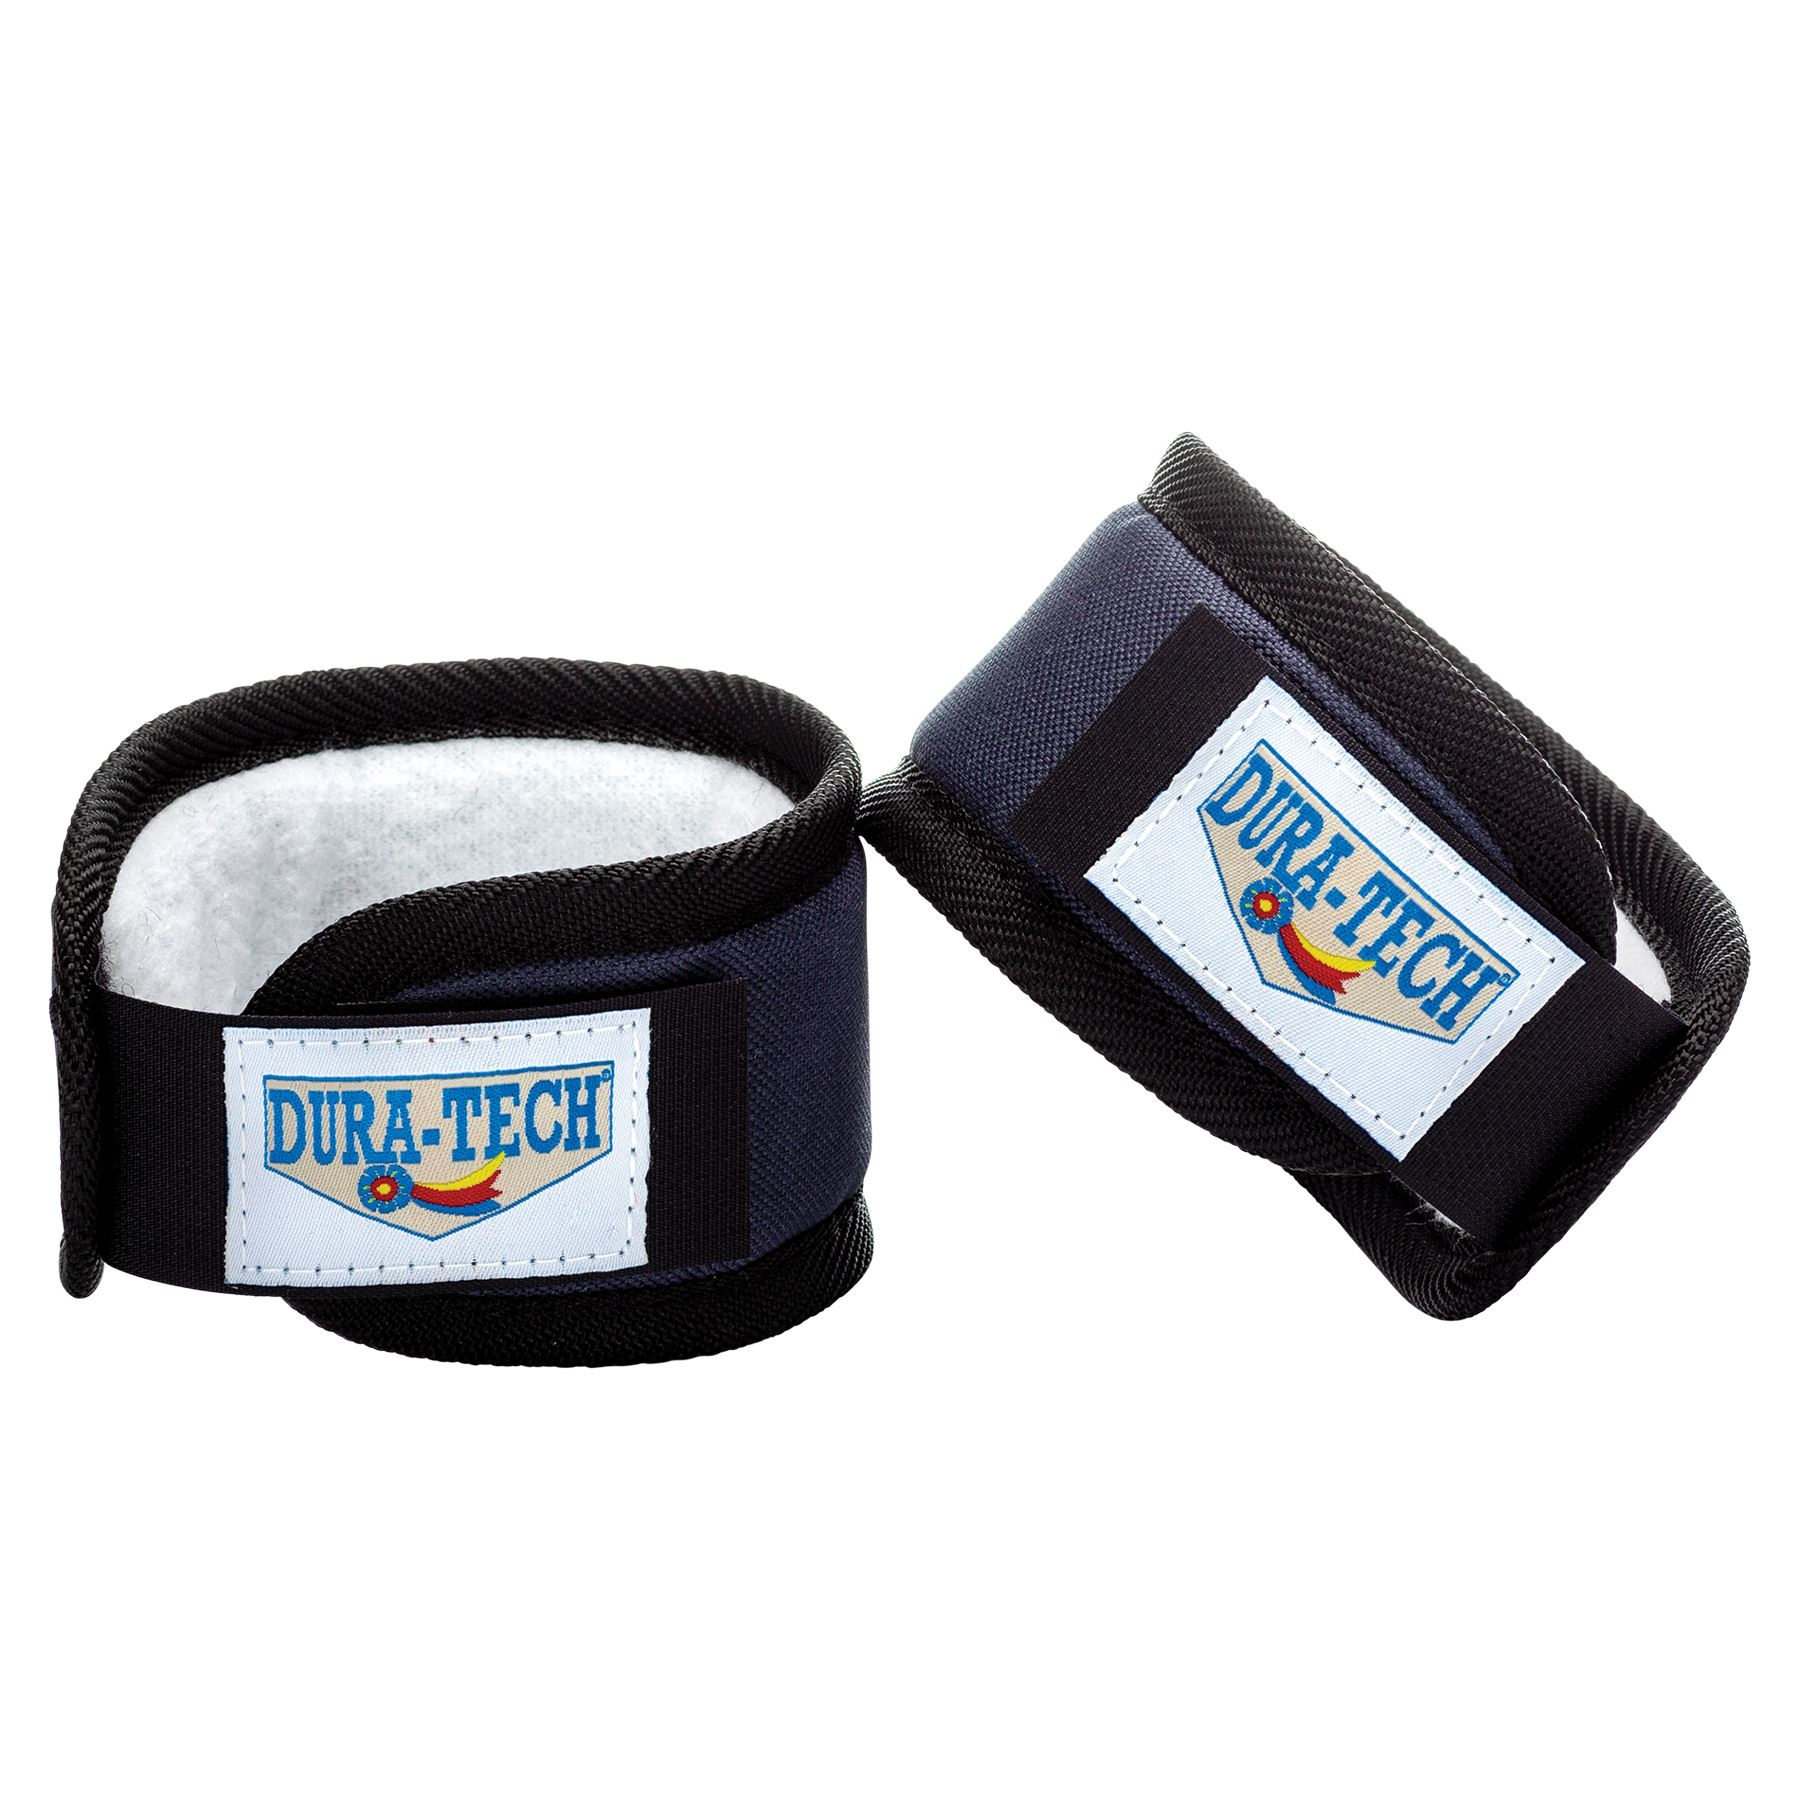 Dura-Tech® Magnetic Ankle Wraps (5